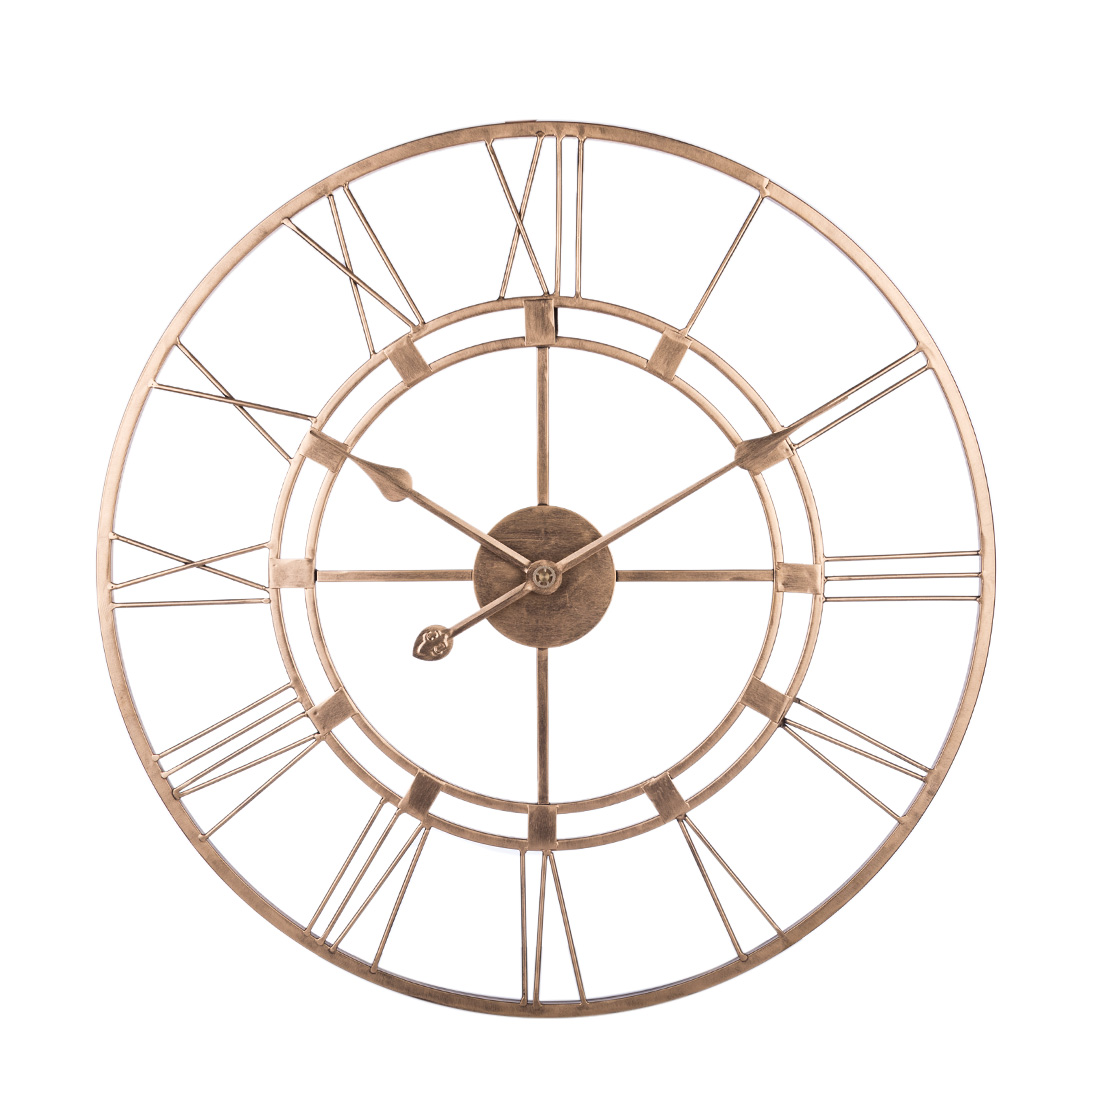 60cm 3D Iron Art Roman Numerals Clock Silent Large Wall Clock Modern Design For Home Living Room Bedroom Decoration-Retro Golden